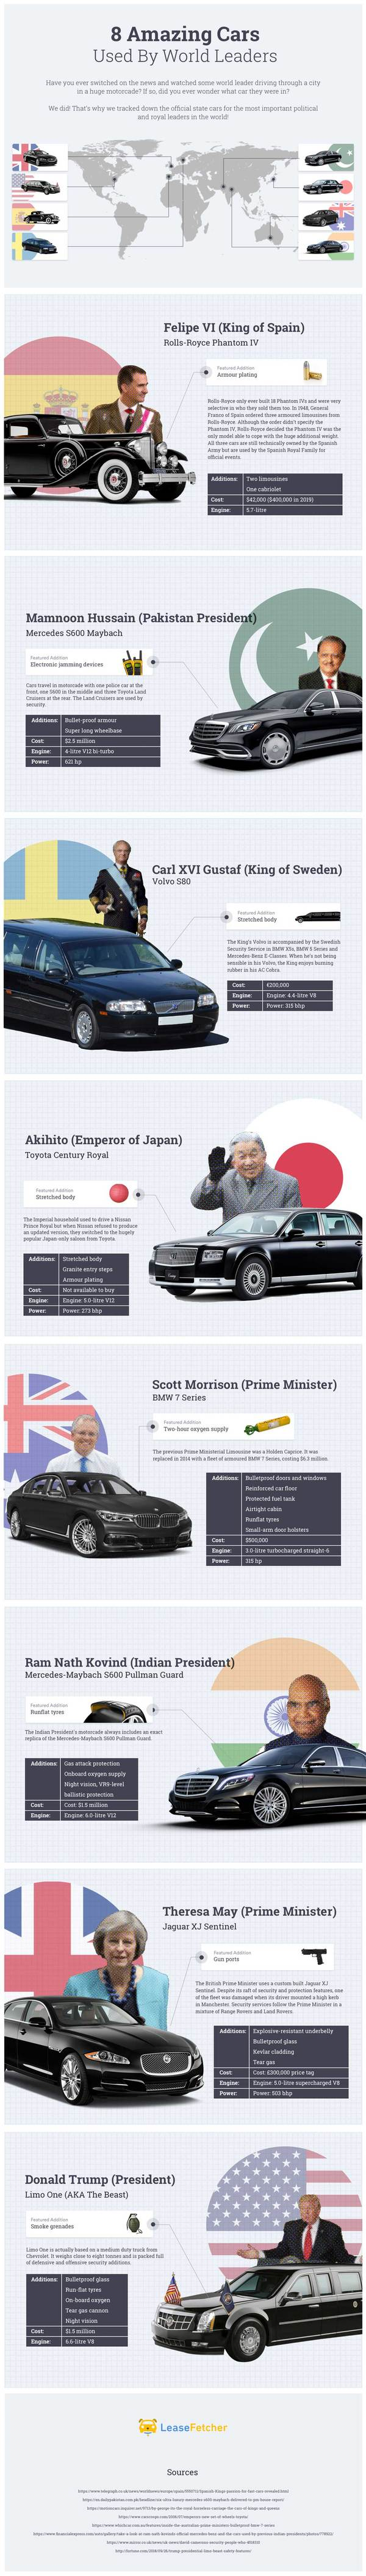 8 Amazing Cars Used by World Leaders